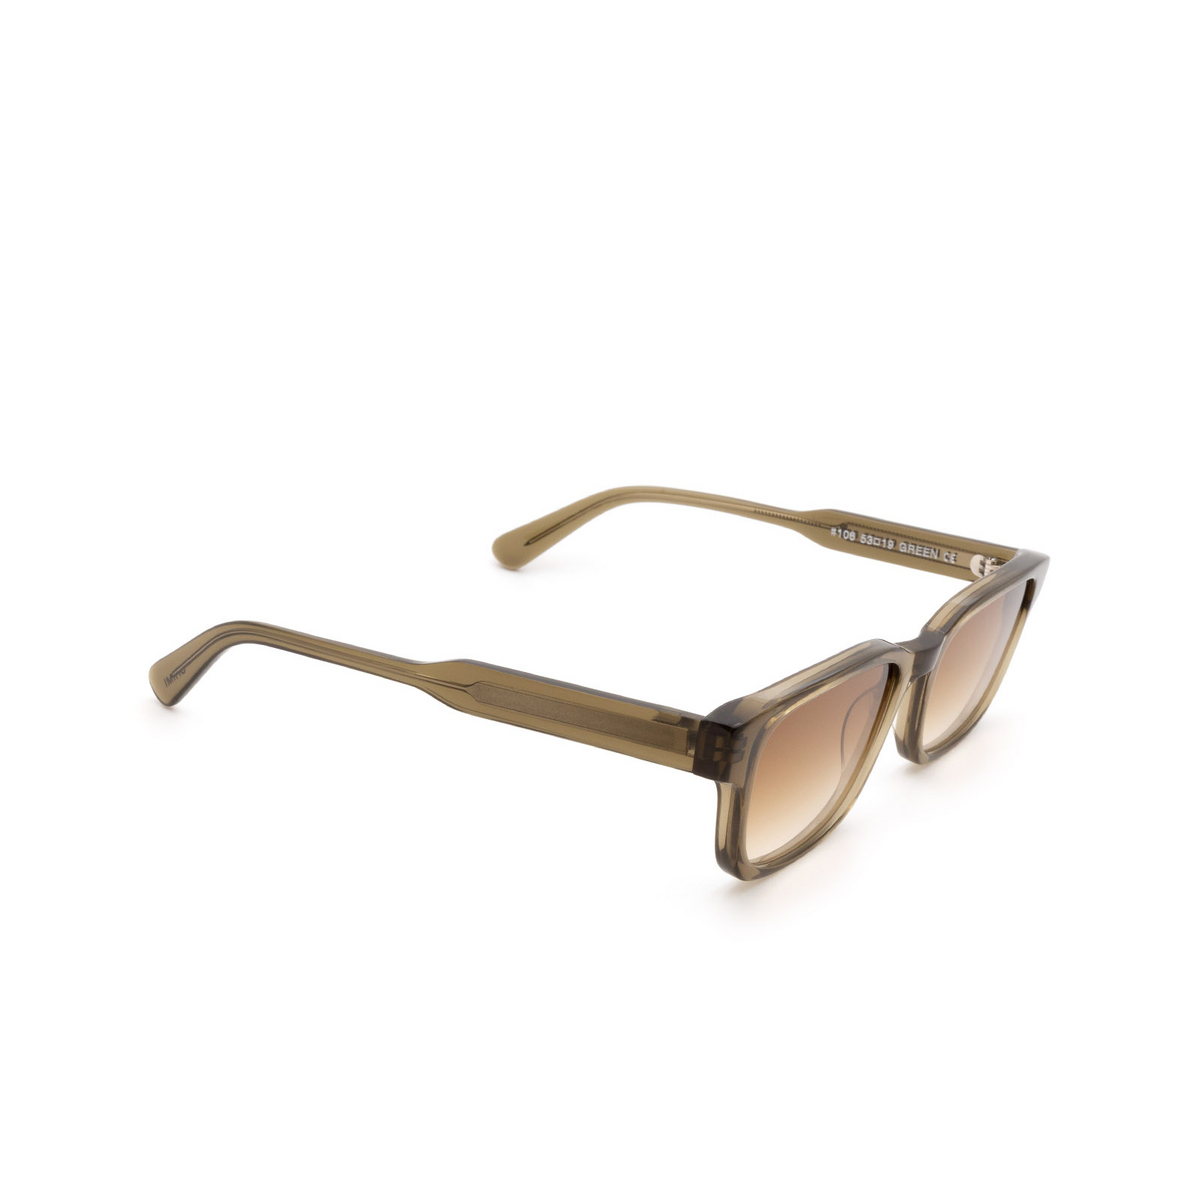 Chimi® Rectangle Sunglasses: #106 color Olive Green Green - three-quarters view.